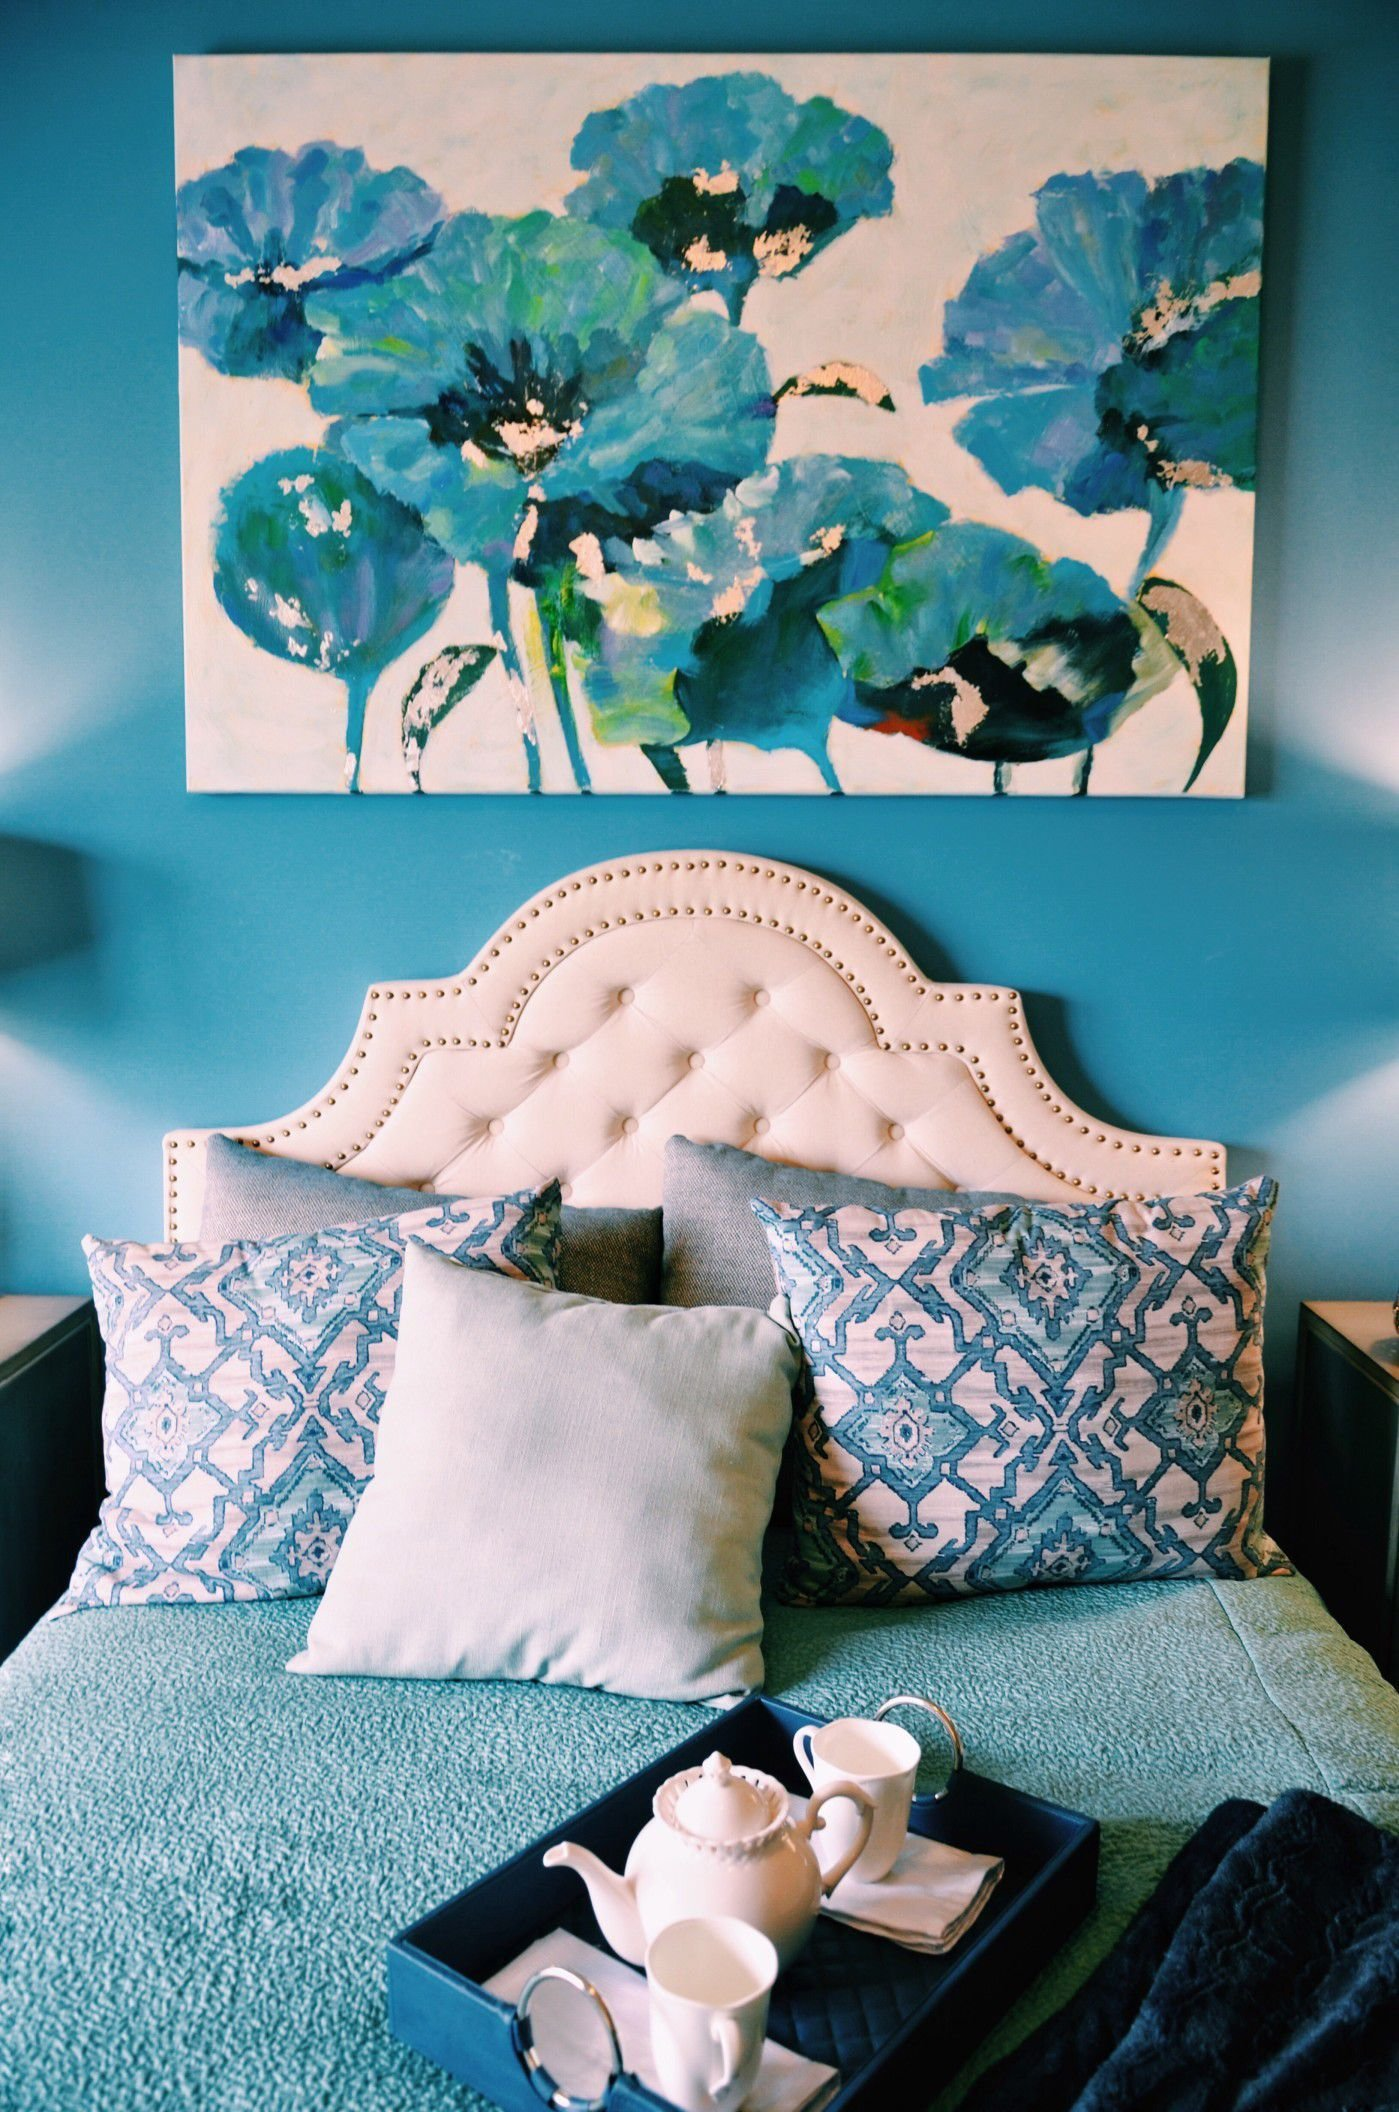 Best 10 Ways To Transform A Boring Bedroom With Pictures